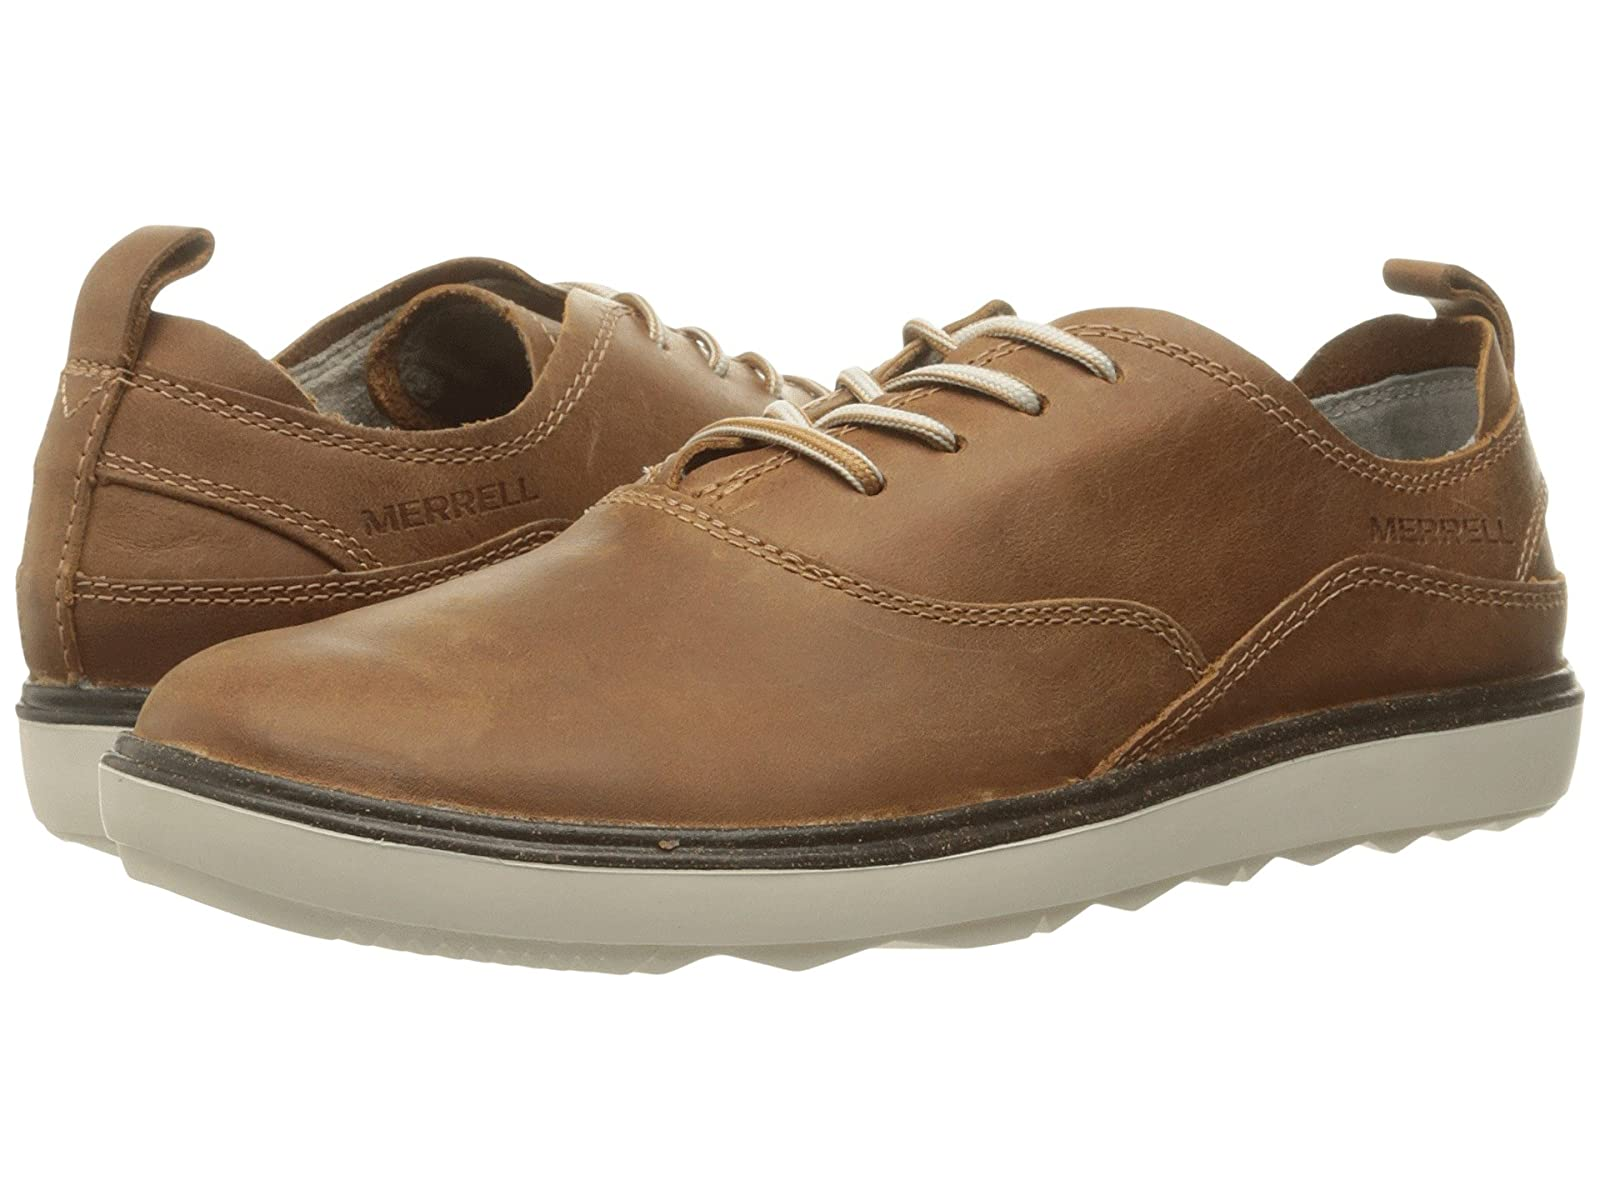 Merrell Around Town LaceCheap and distinctive eye-catching shoes